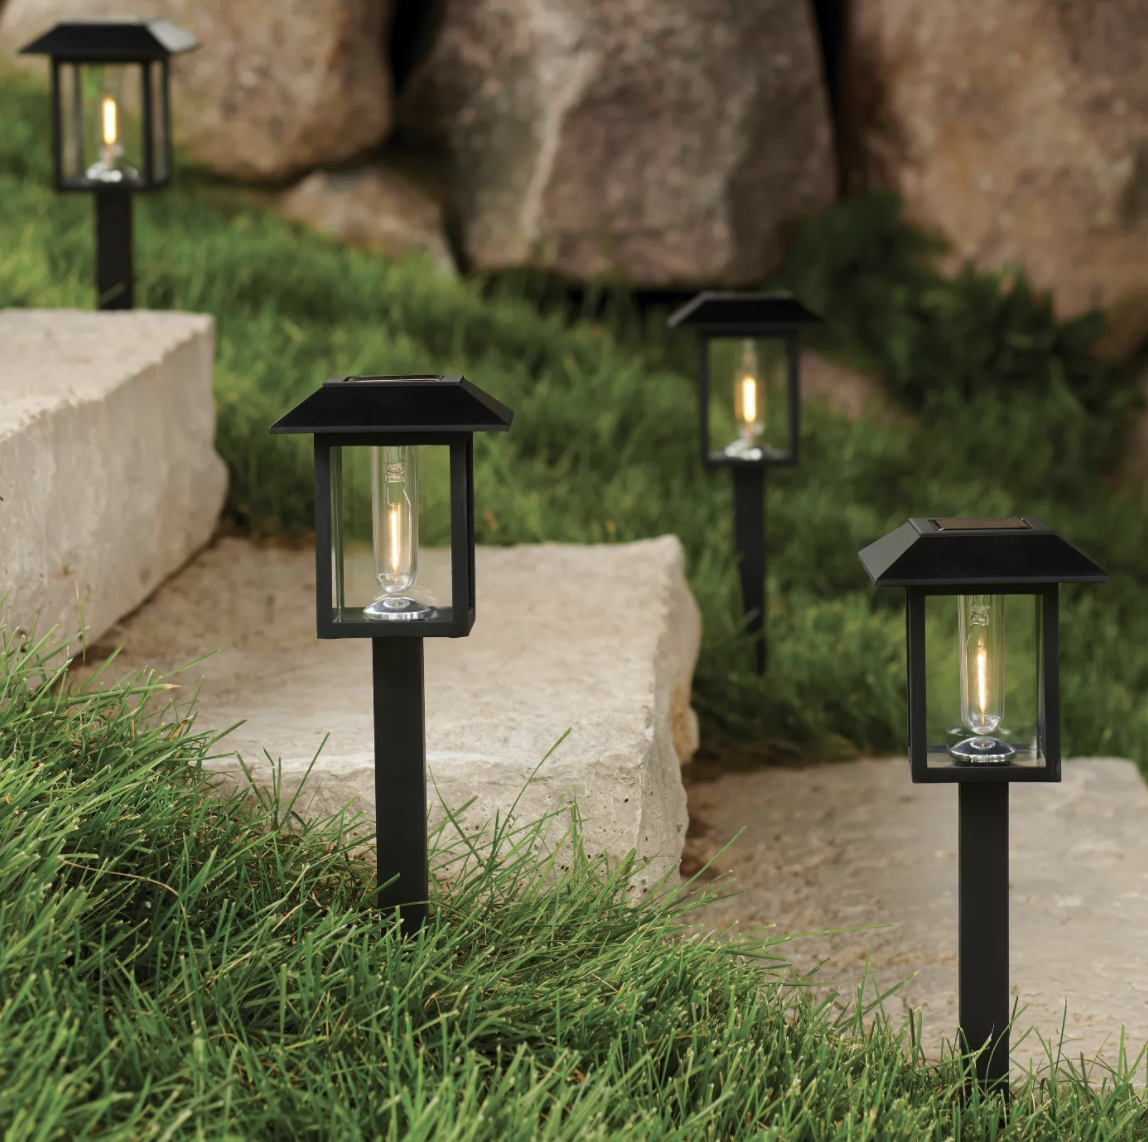 lantern lights on stakes lining a set of stairs